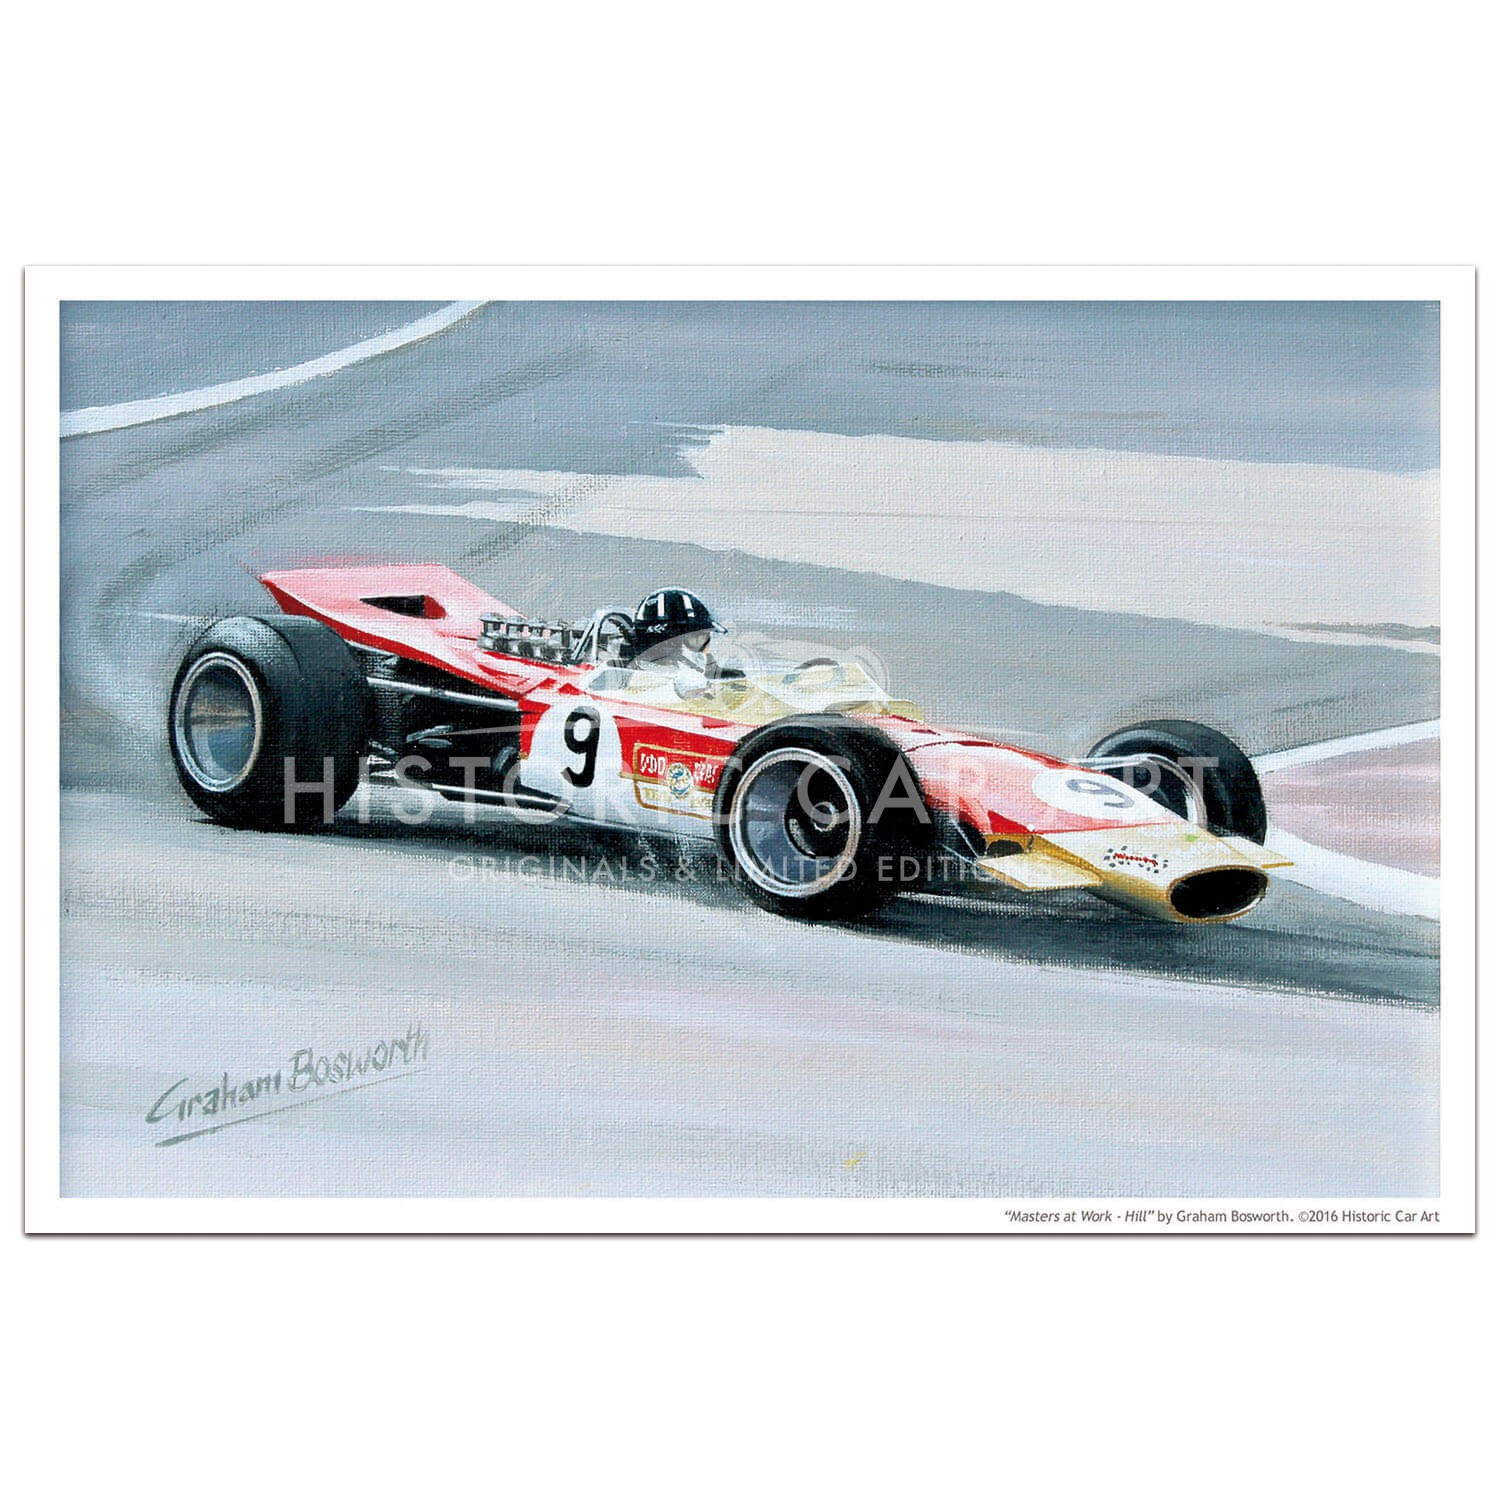 Masters at Work - Hill and Lotus 49 - Print